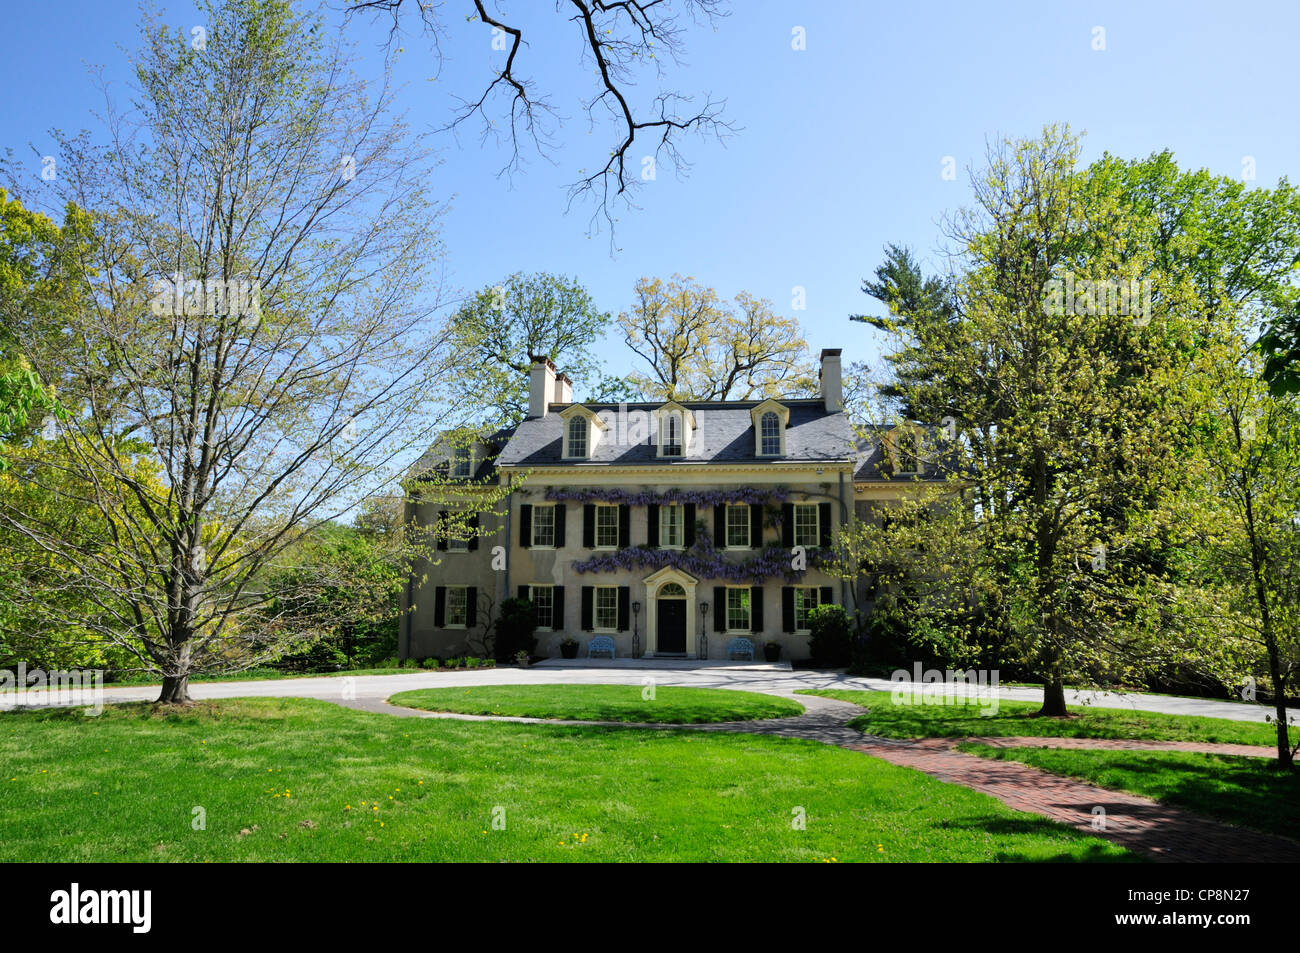 Eleutherian Mills, the du Pont family home, now part of the Hagley museum - Stock Image